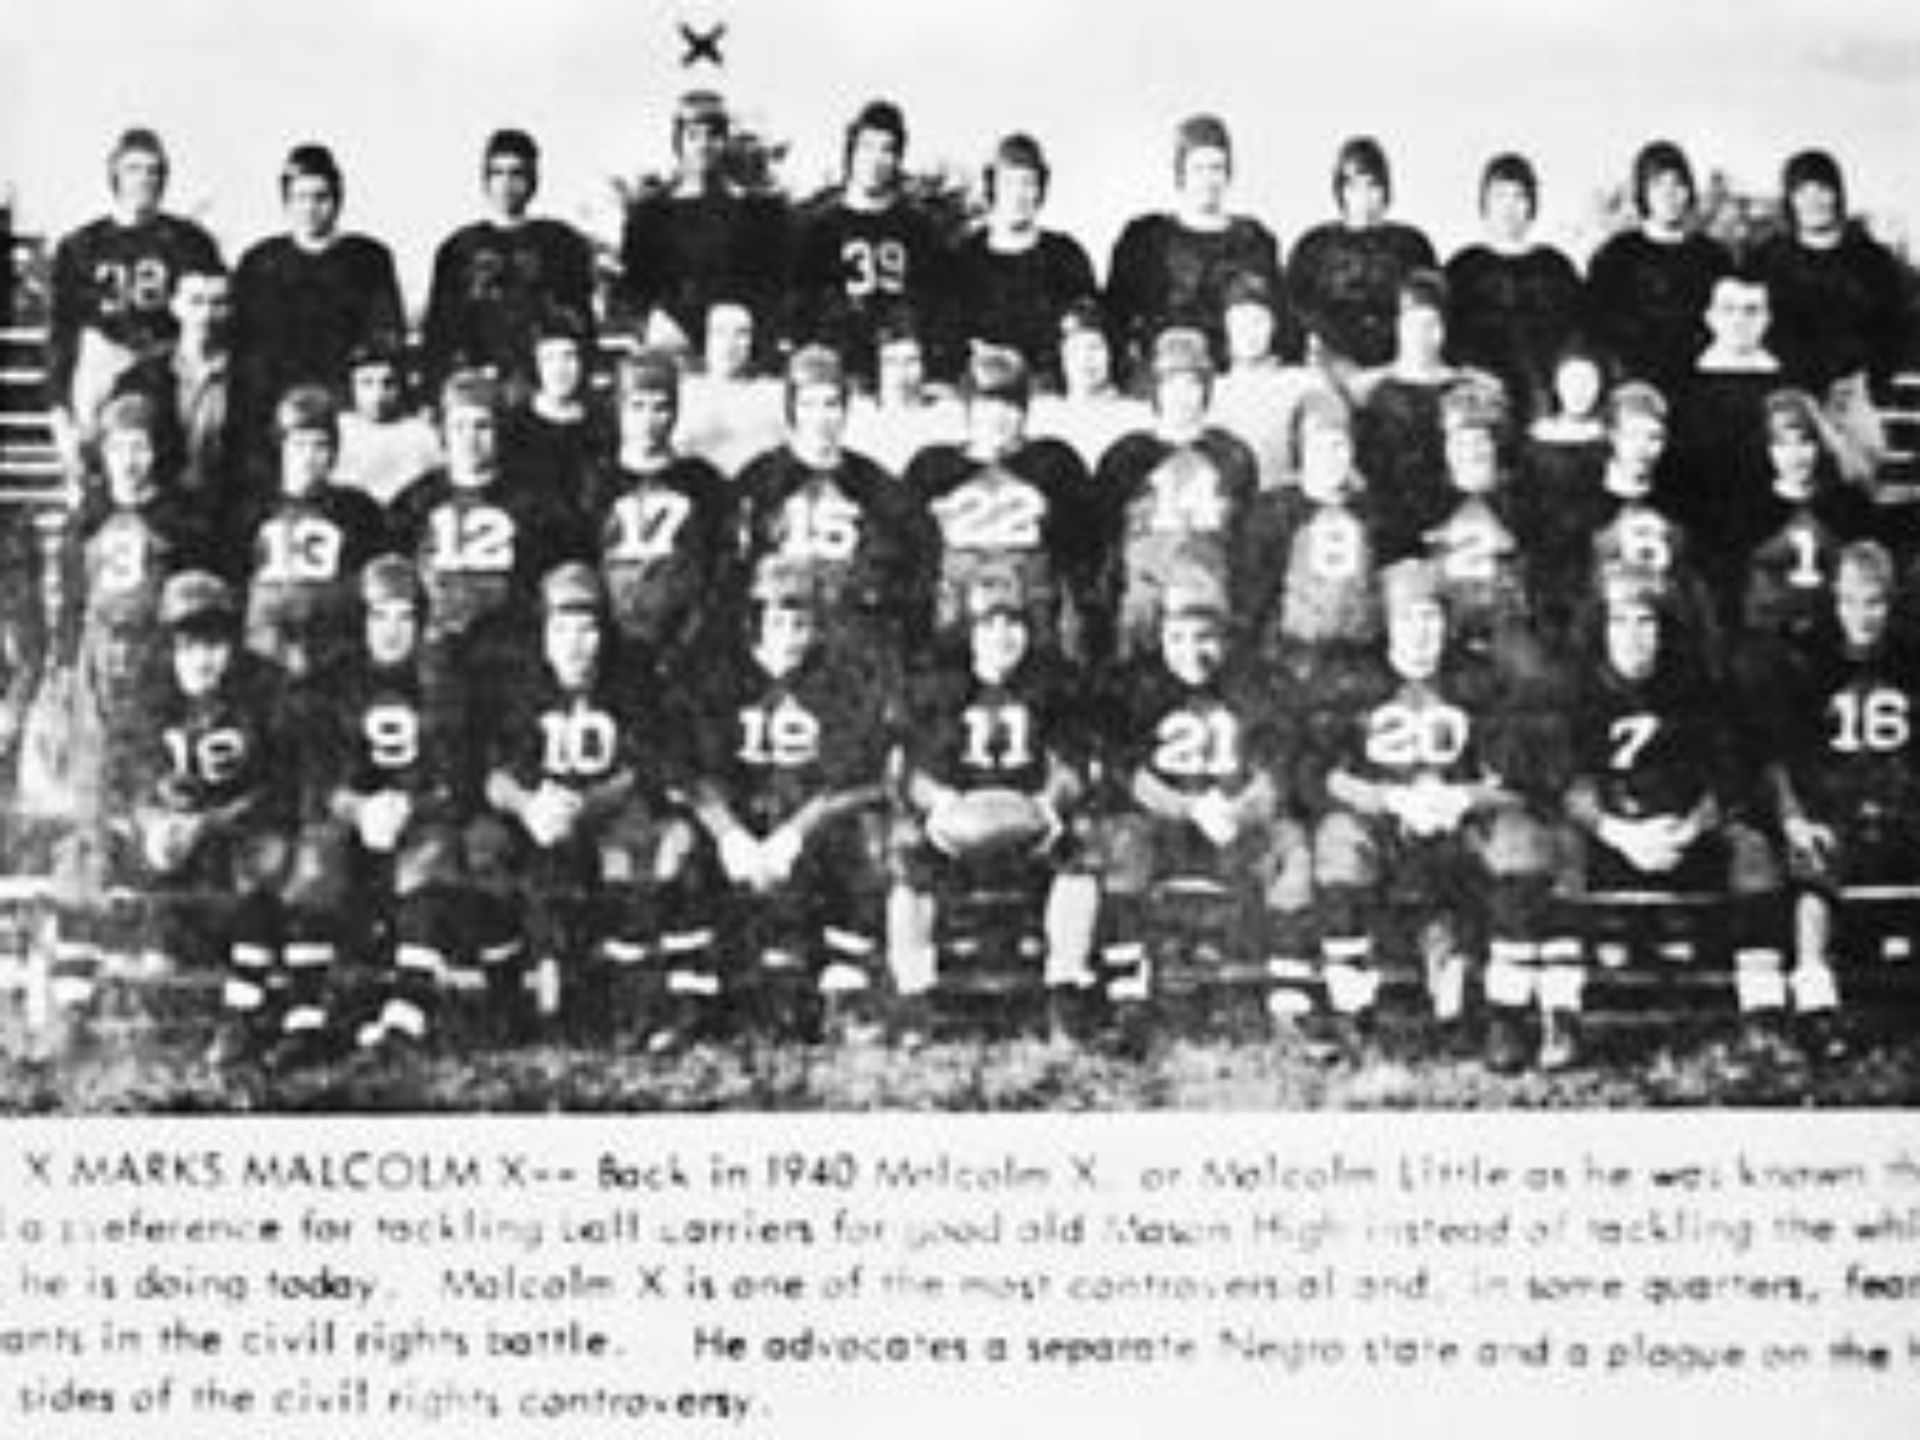 Malcolm, indicated by an X, on the Mason High School football team in 1940